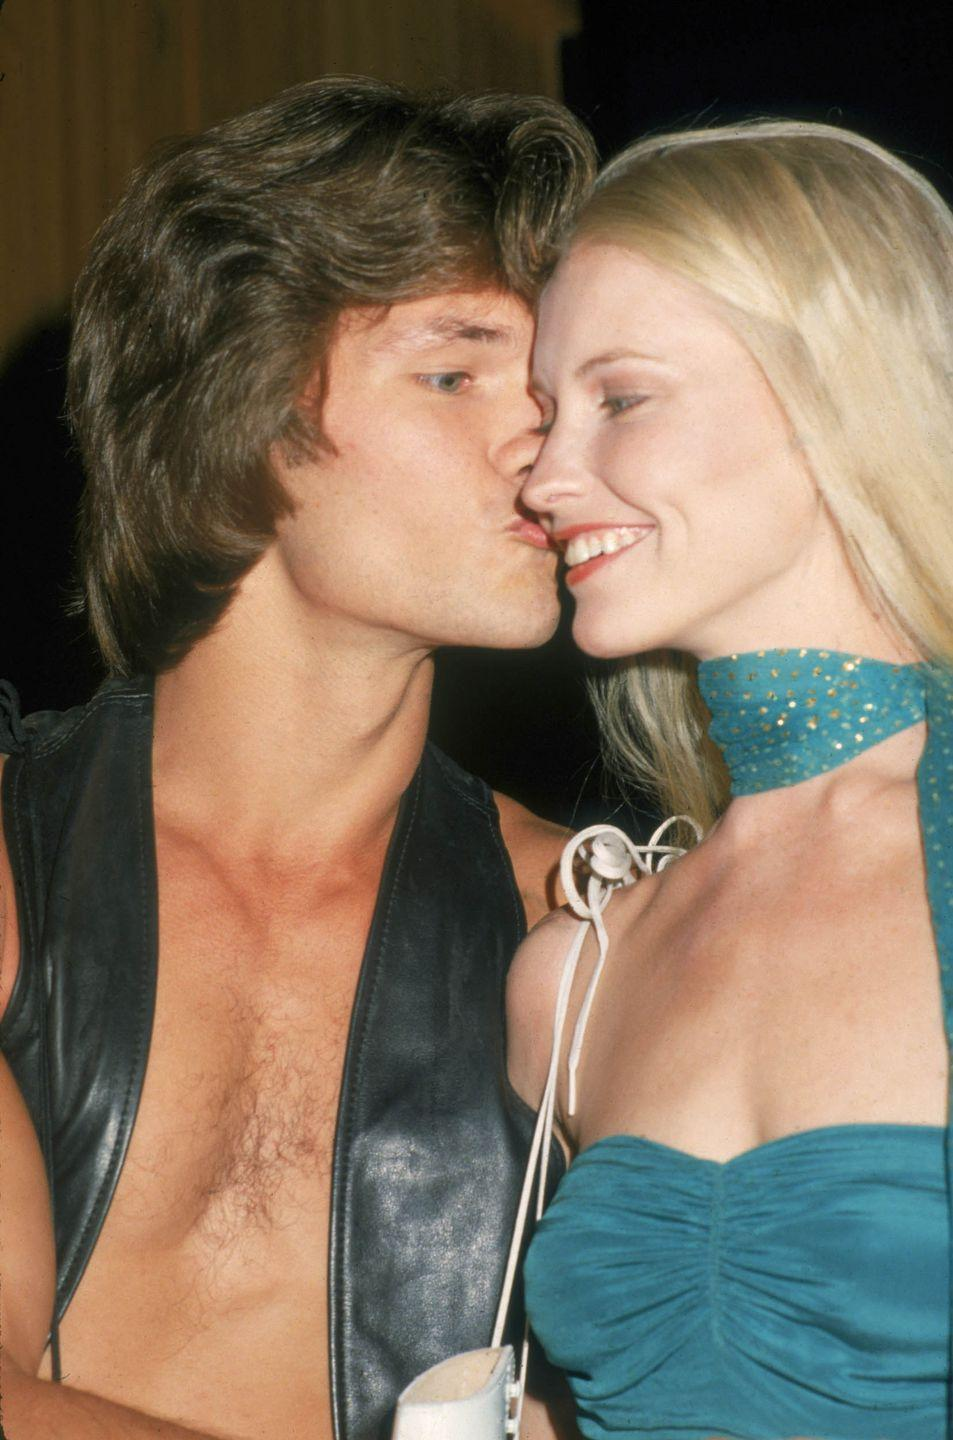 <p>Patrick Swayze kisses his wife, Lisa Niemi at the premiere party for the movie 'Skatetown USA' at Flippers roller rink, Los Angeles, California, October 1979.</p>